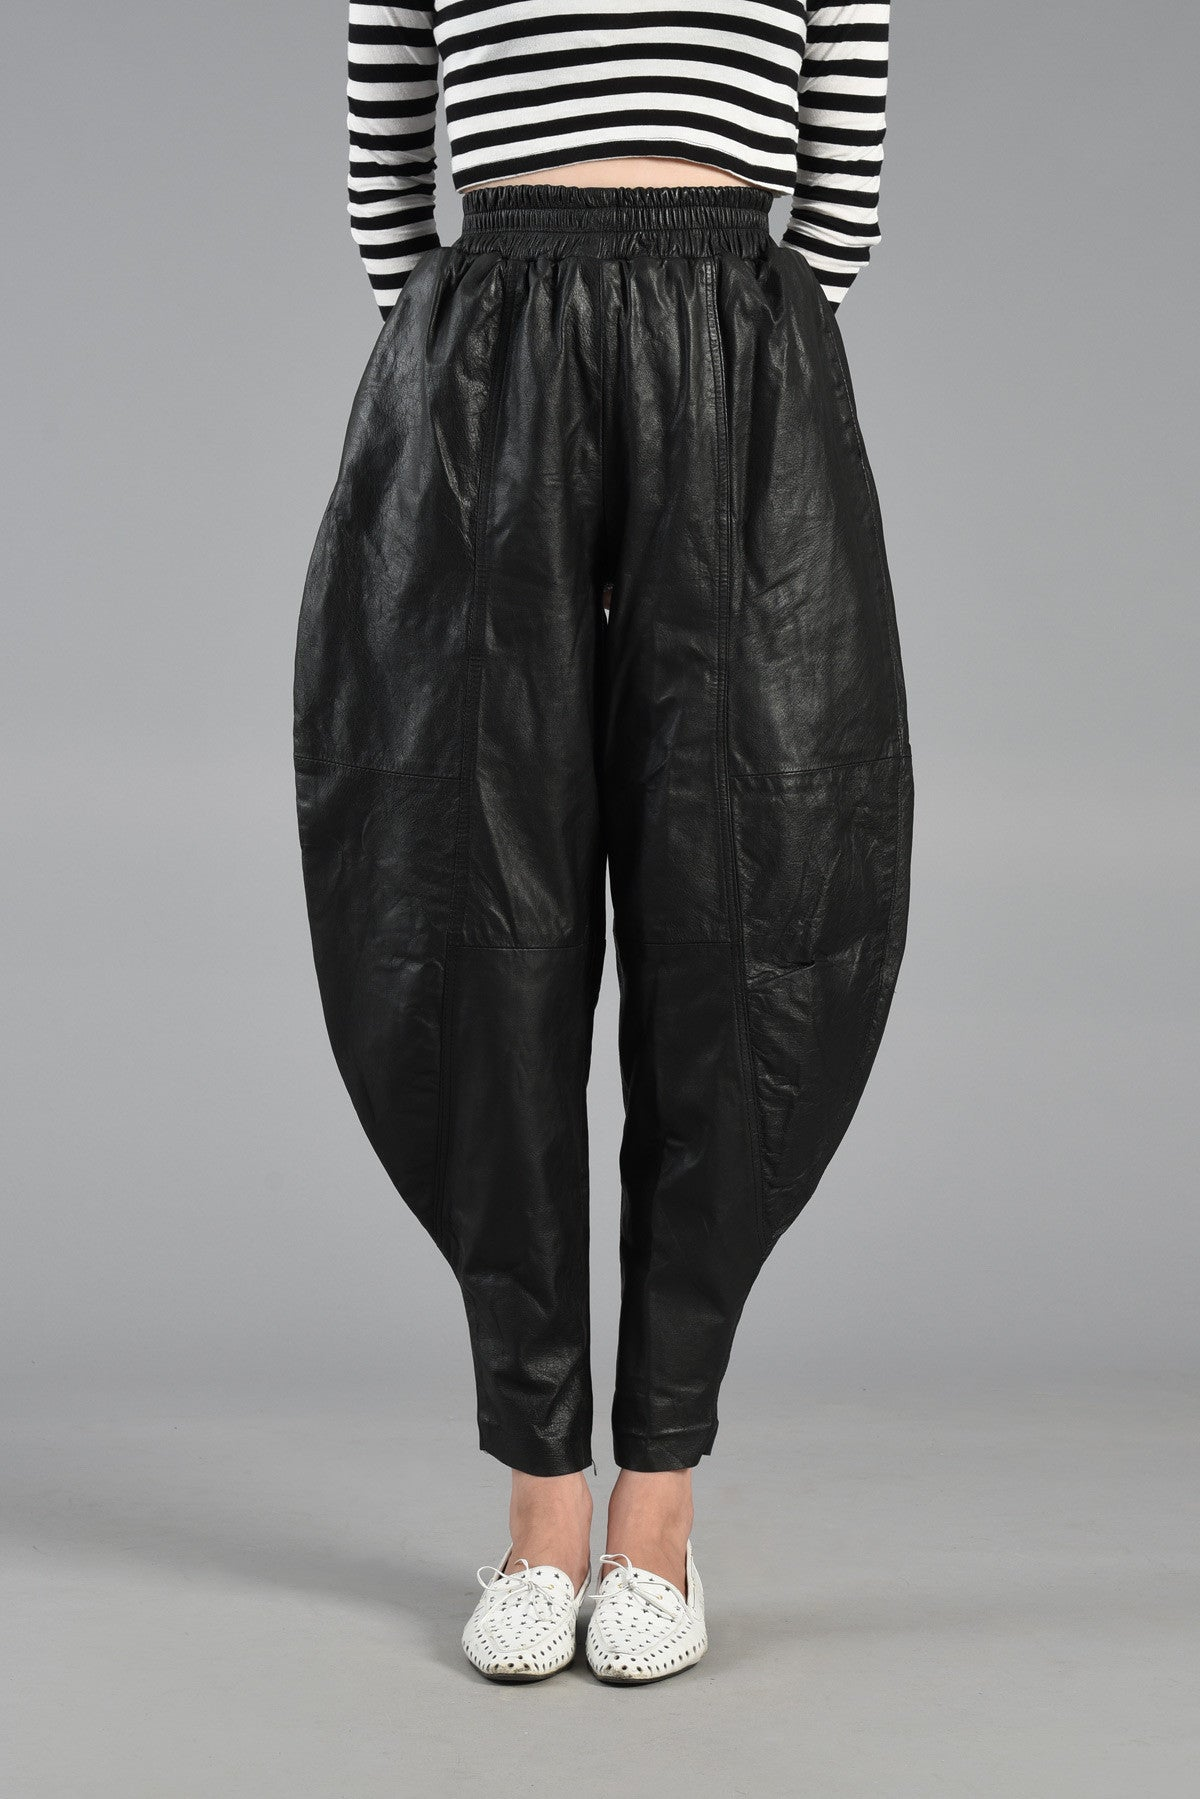 Another name for 1980's harem pants?